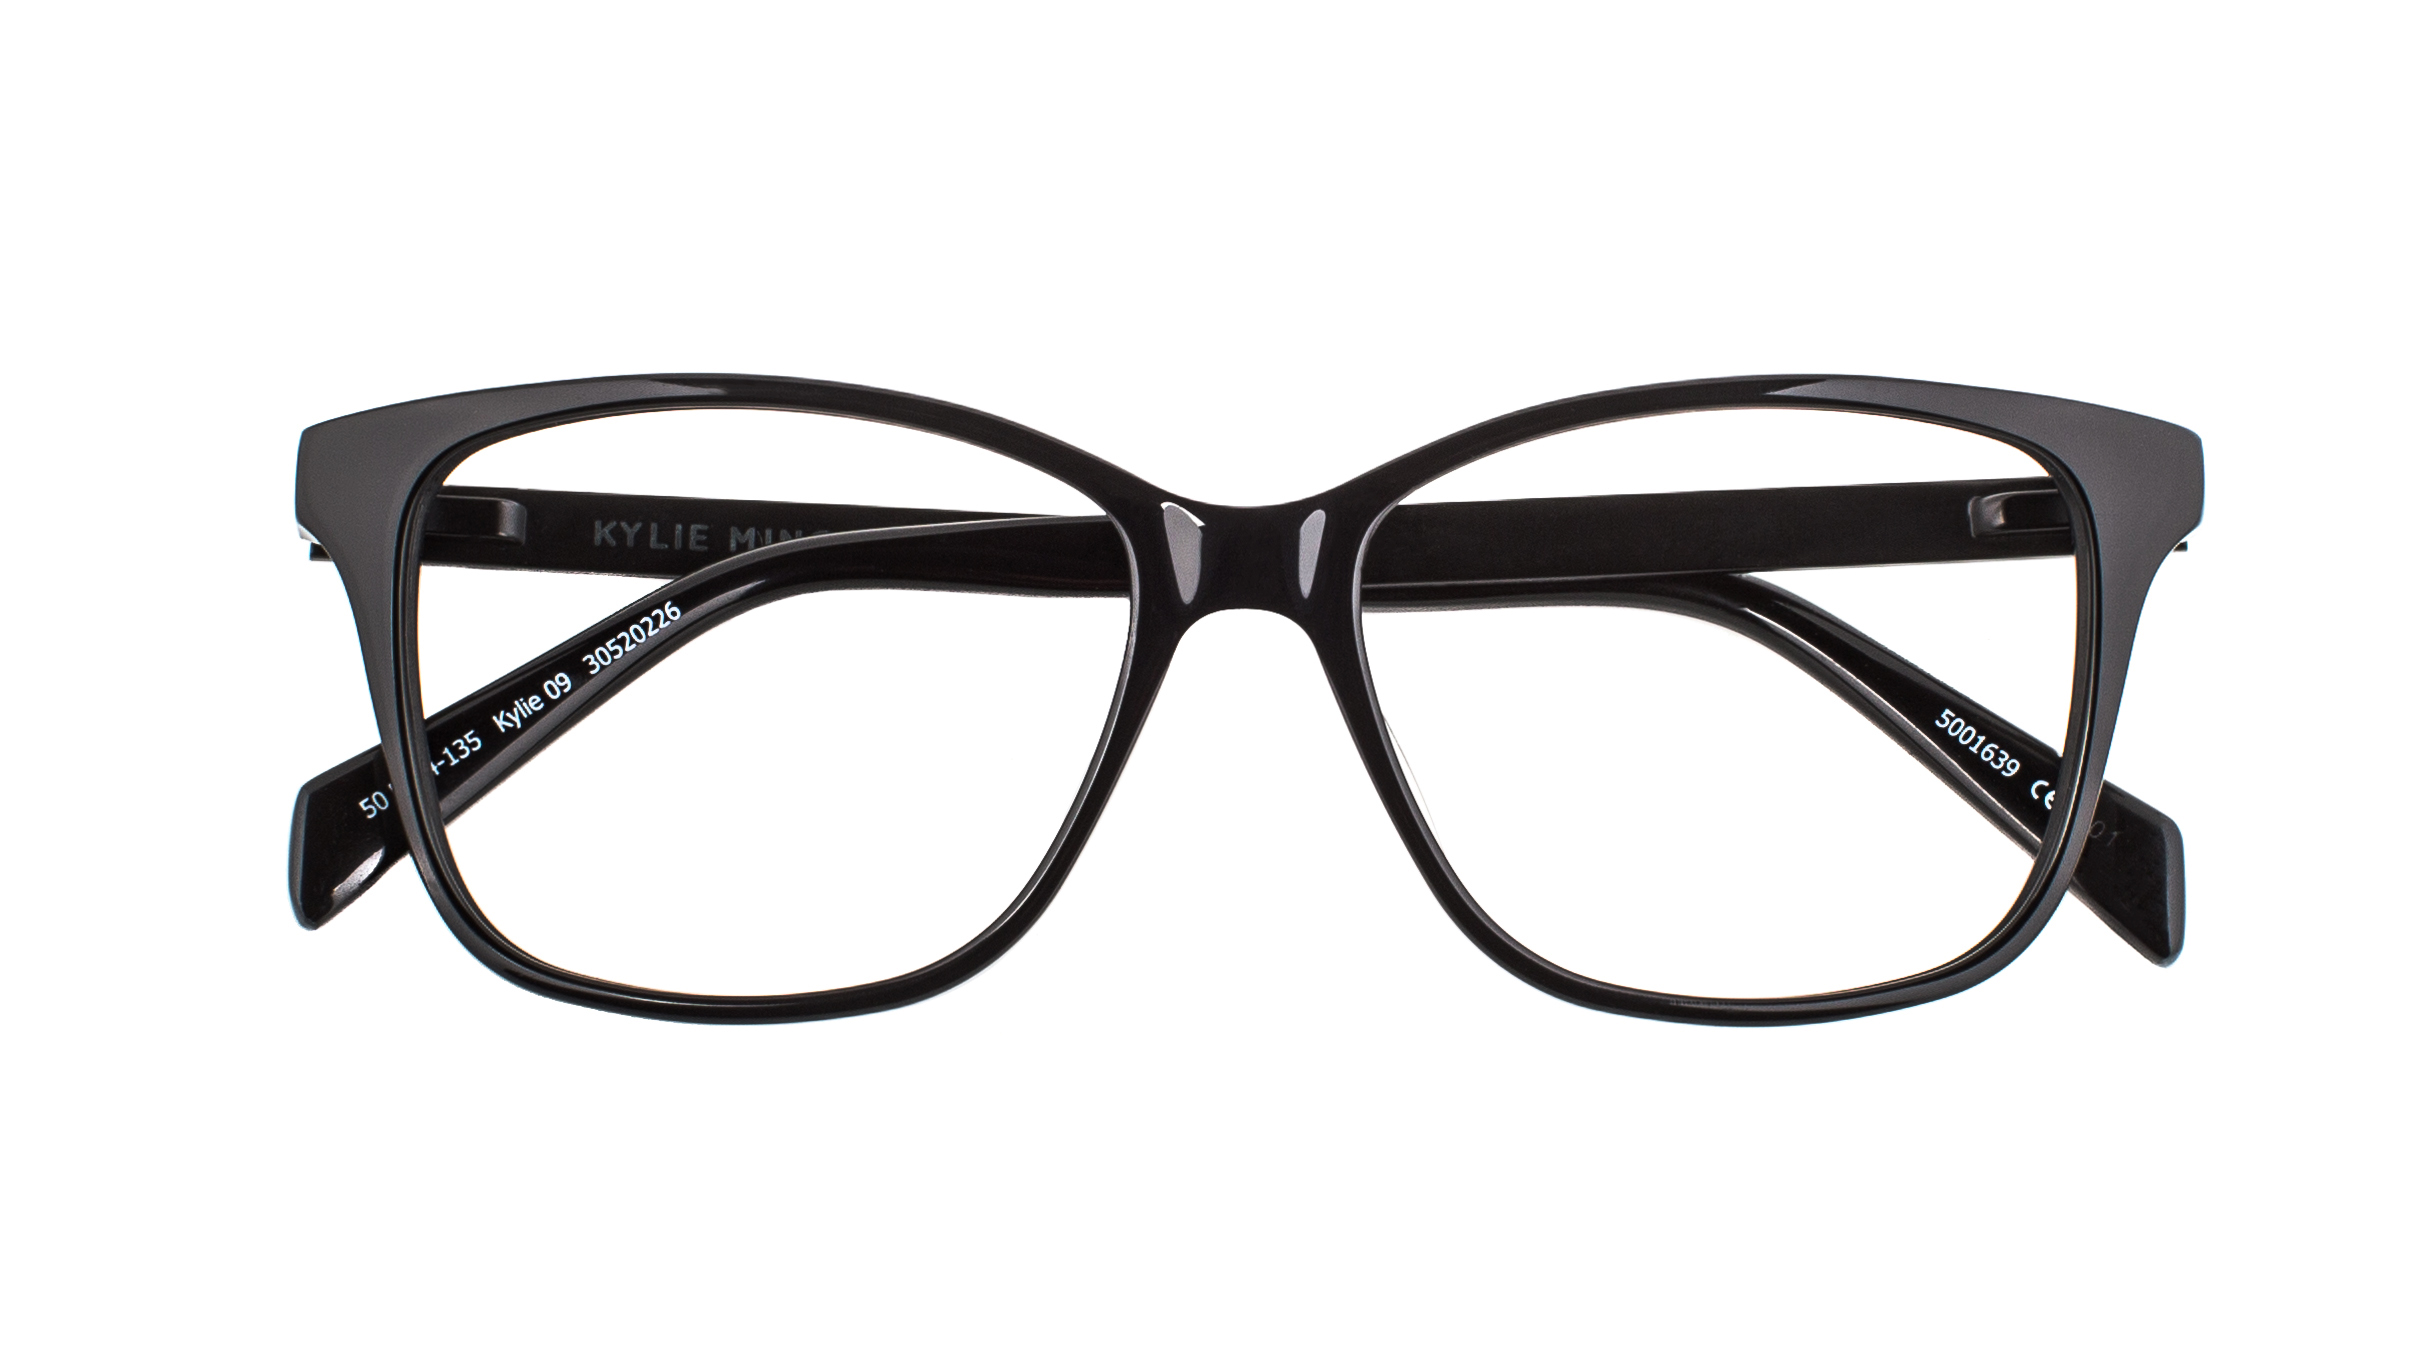 Kylie Minogue Eyewear_Kylie 09_SKU 30520226_RRP 2 pairs from $299